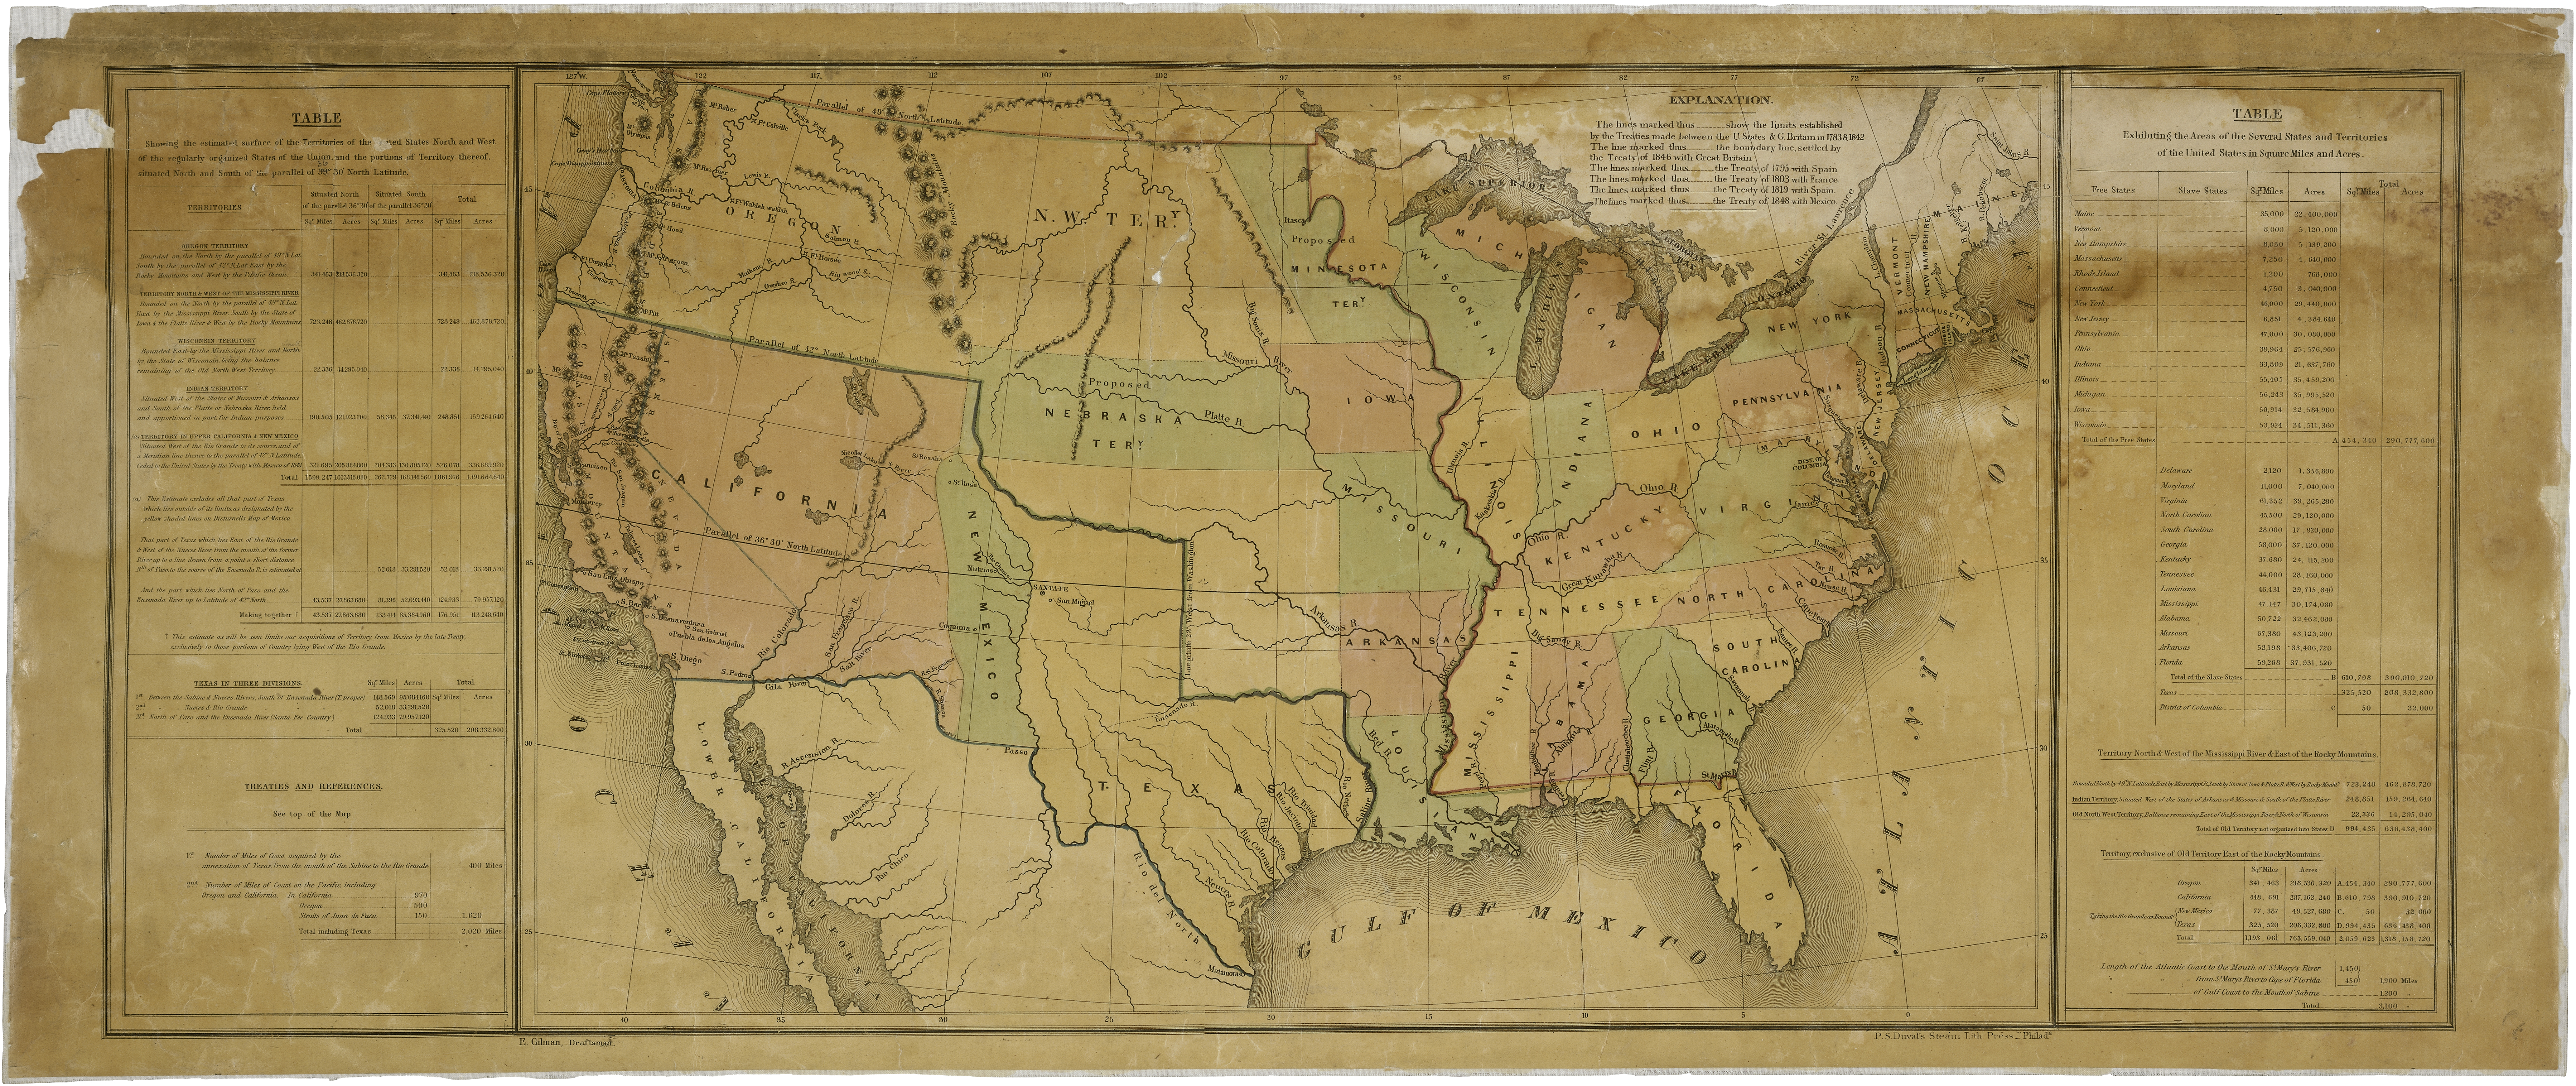 Us Map Of 1848 Map of the United States including Western Territories, December